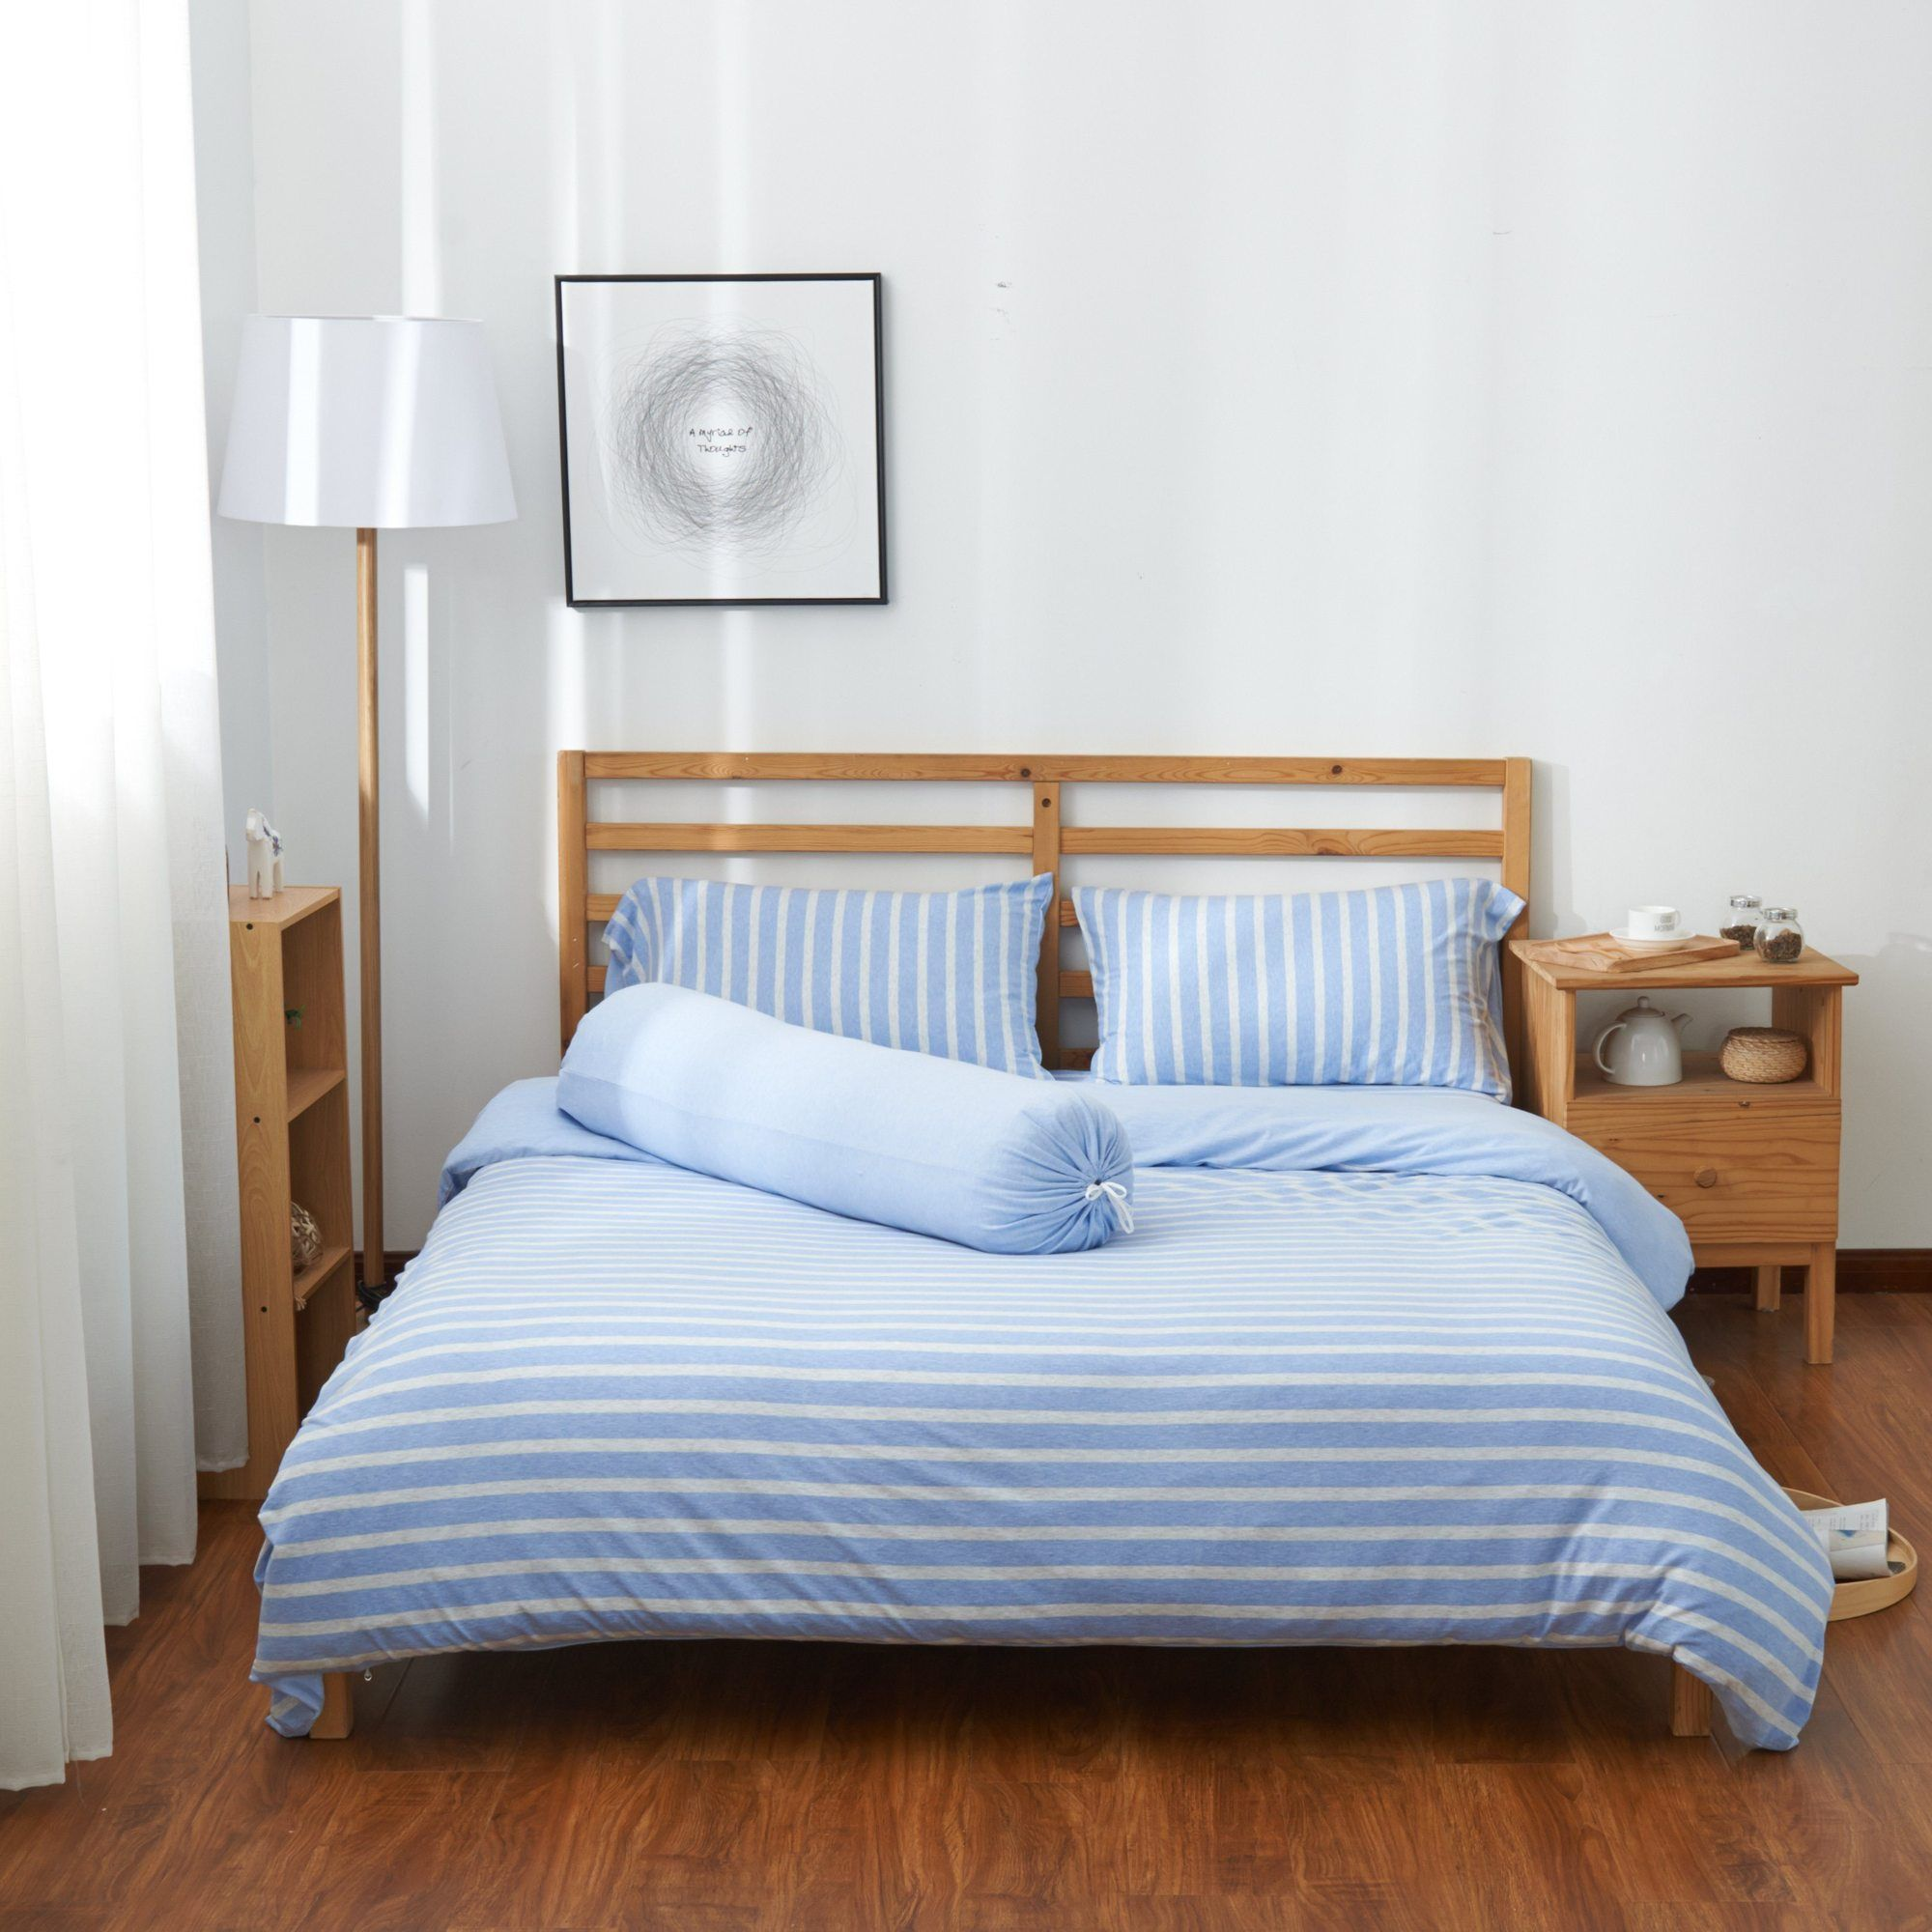 Bedding Affairs Cotton Pure Sky Blue Stripe Jersey Cotton Fitted Sheet Set